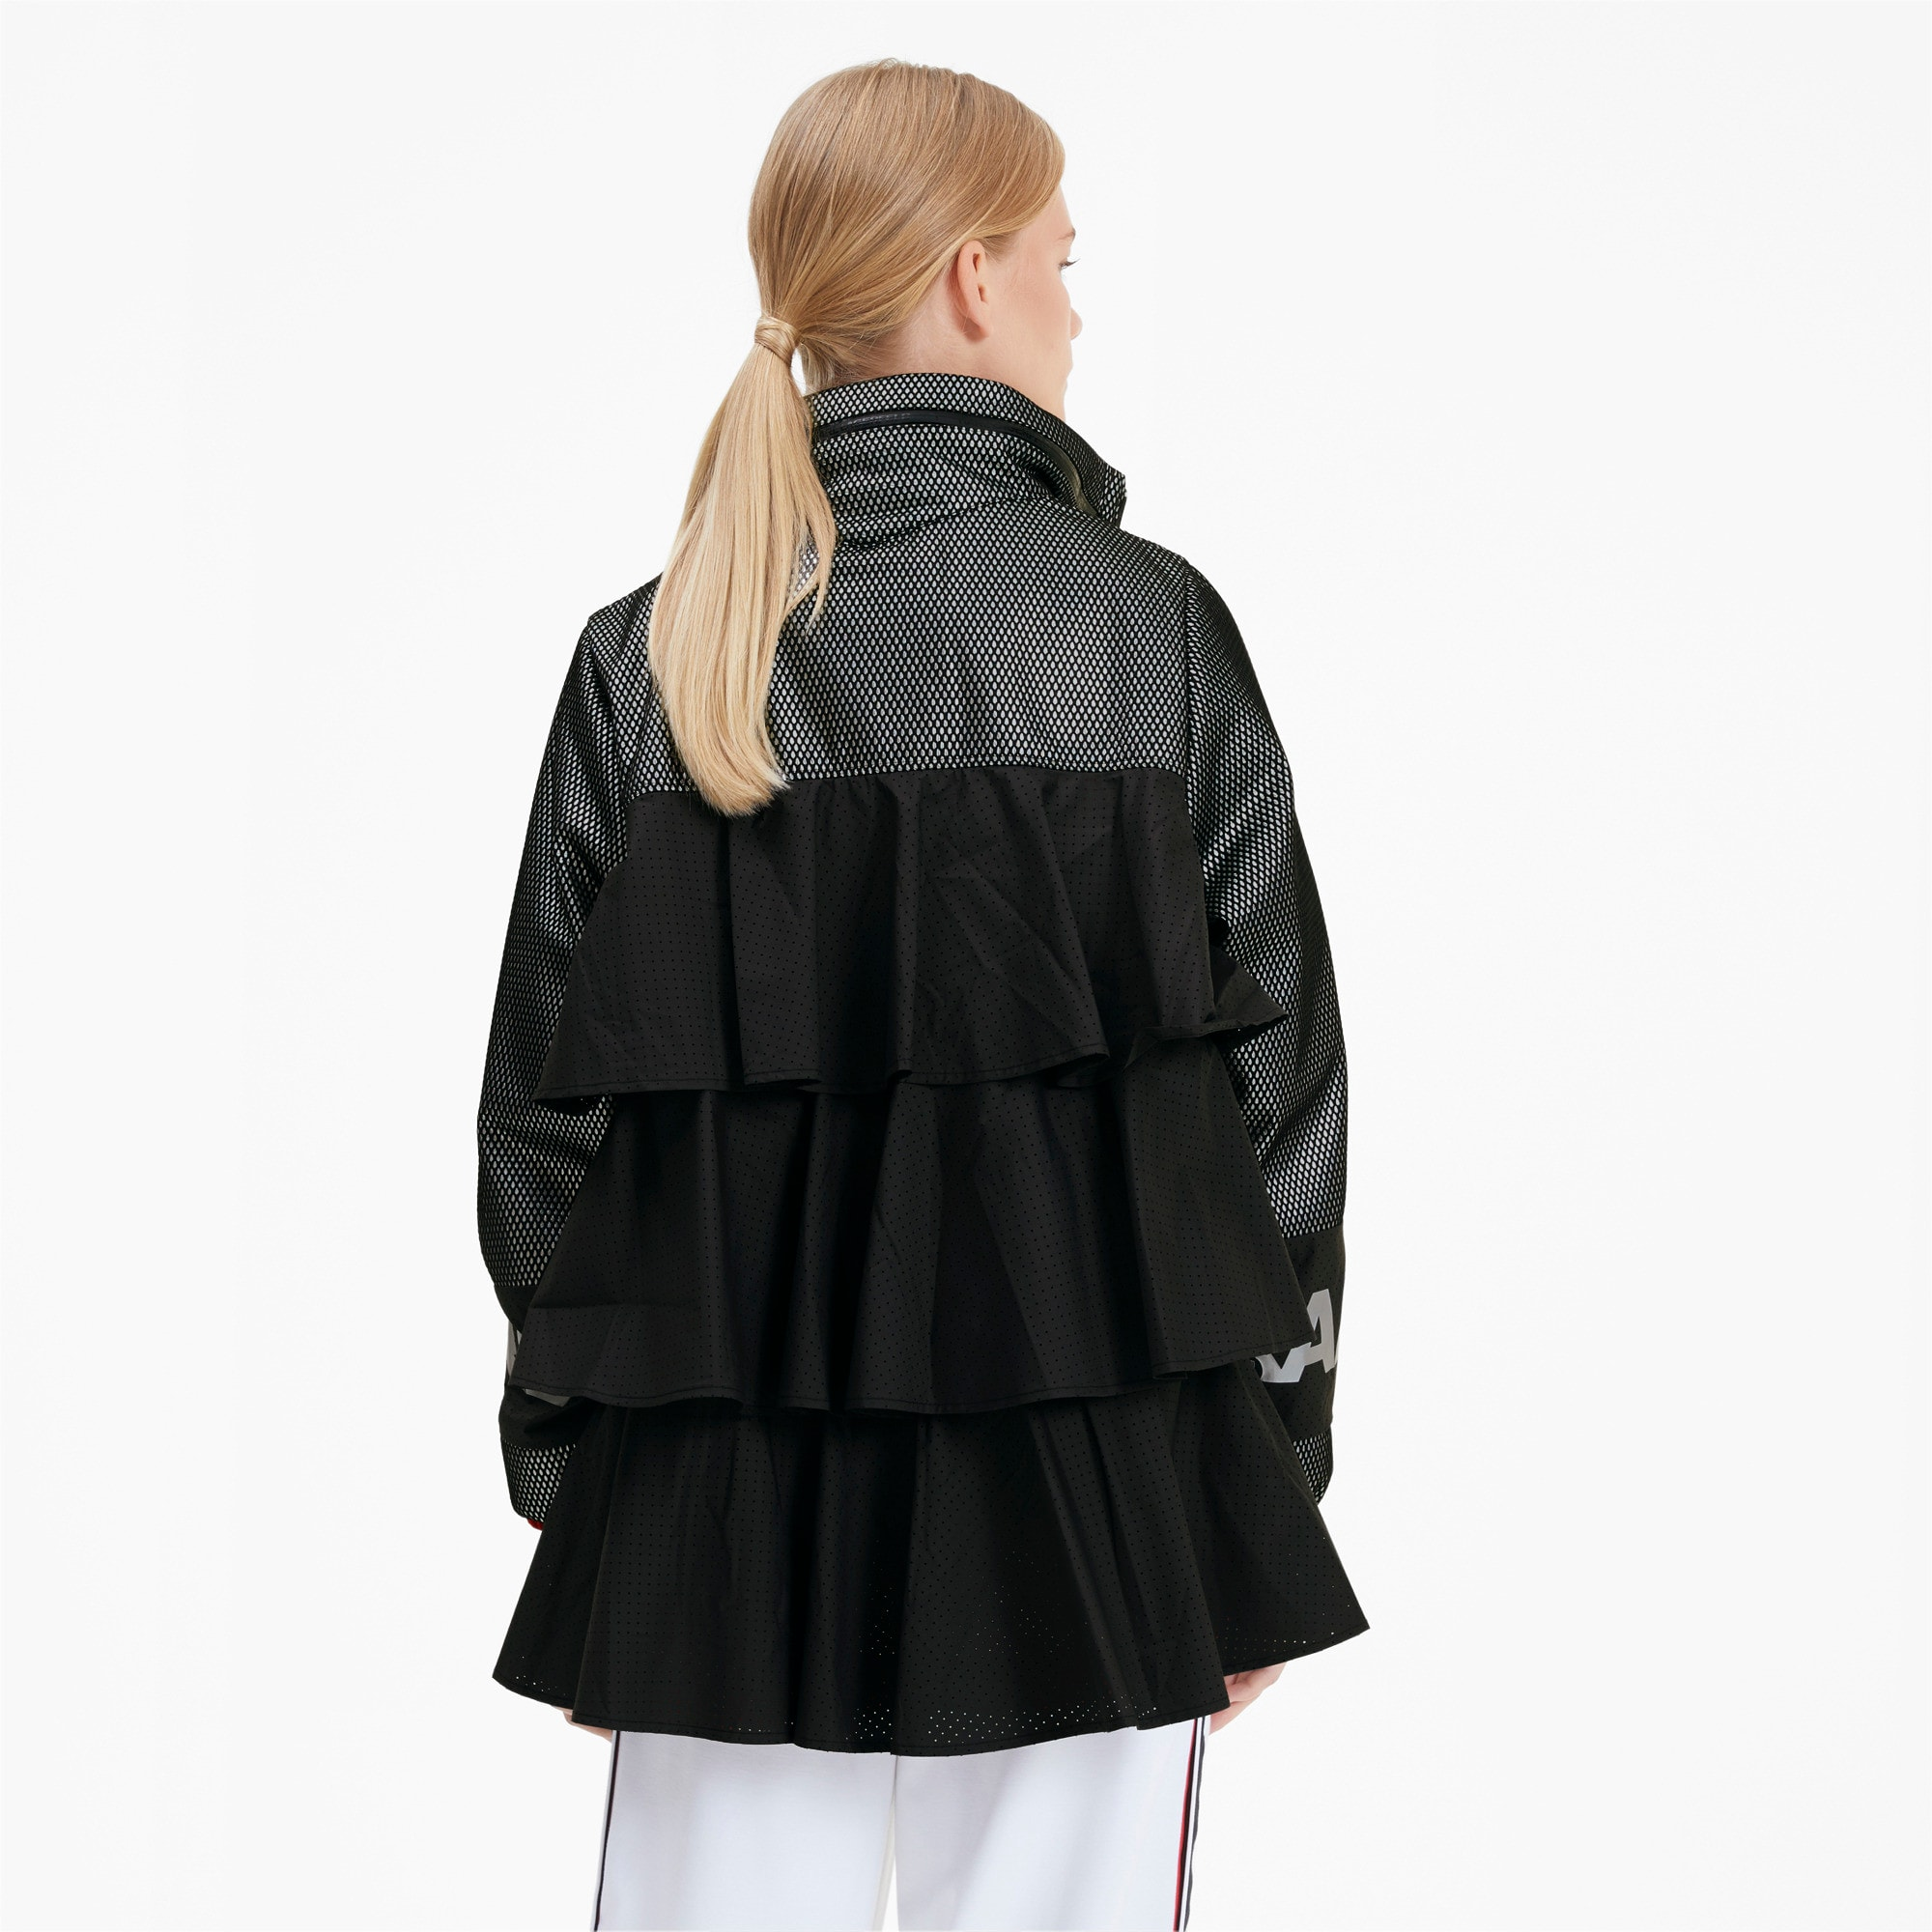 Thumbnail 2 of PUMA x KARL LAGERFELD Damen Outerwear Jacke, Puma Black, medium